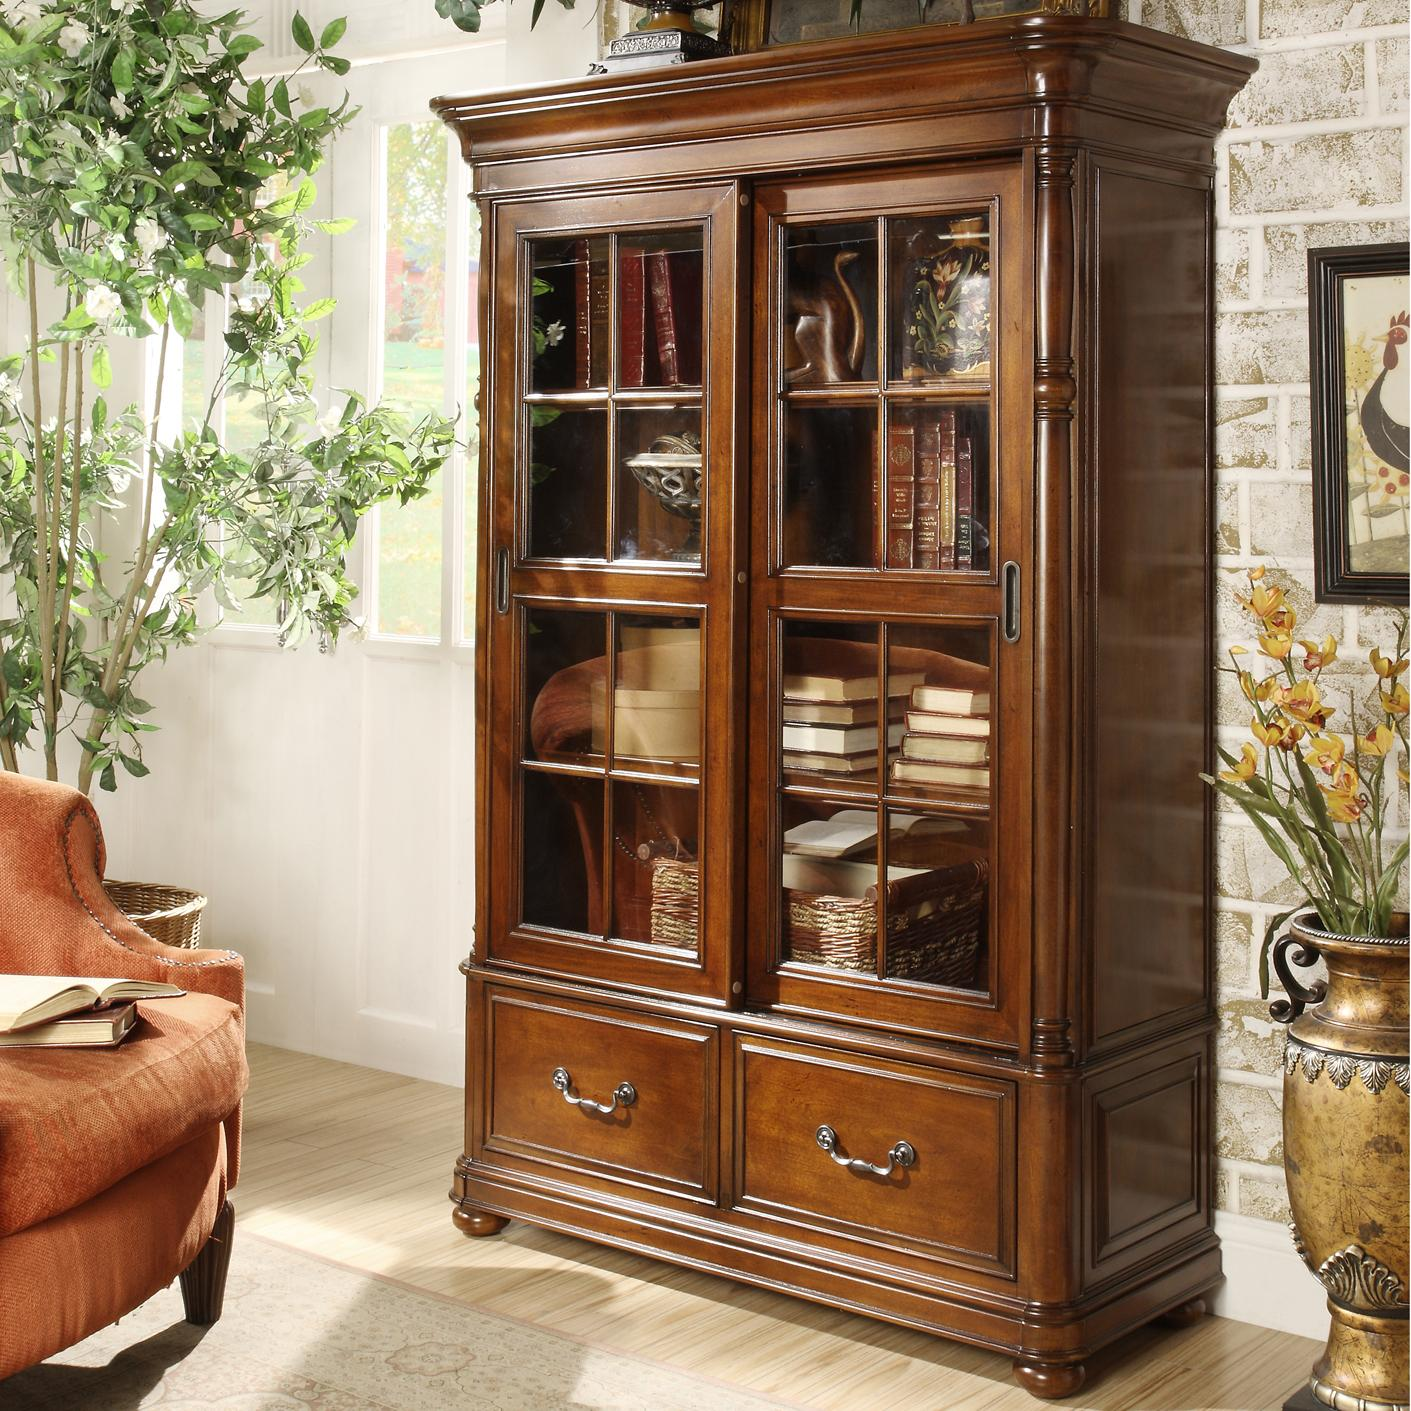 ashley furniture island item products b cross large bookcase door royal number